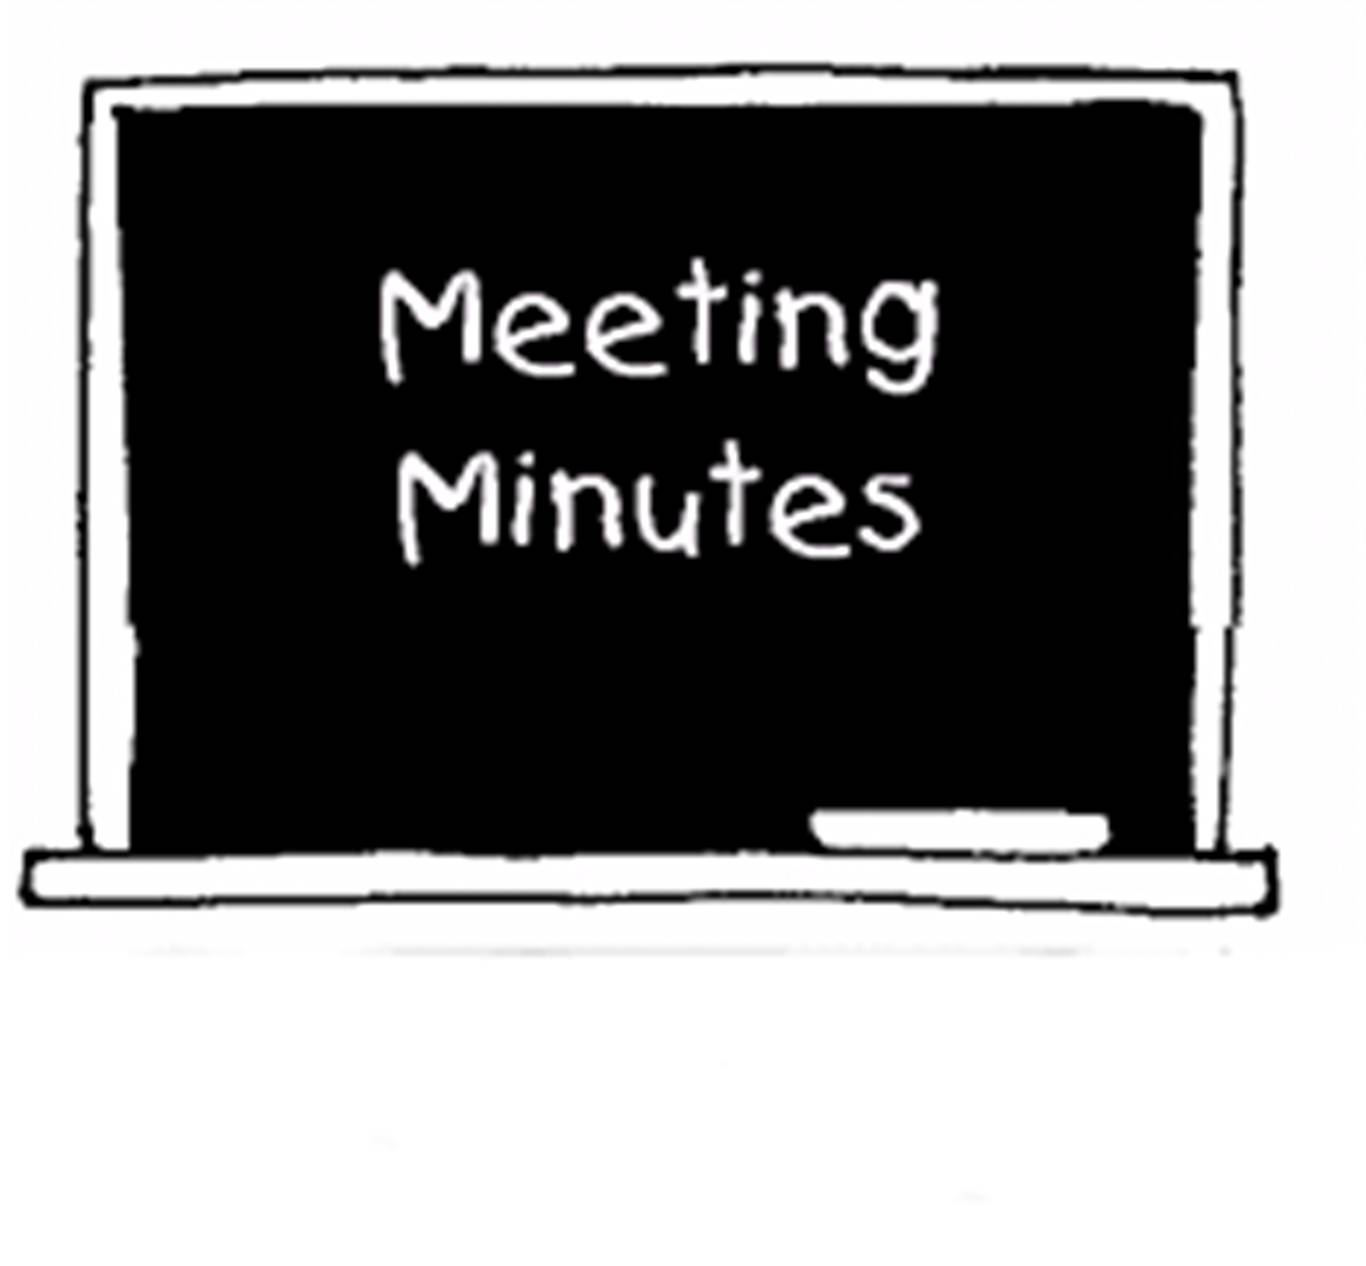 November 2020 GA CSC Meeting Minutes